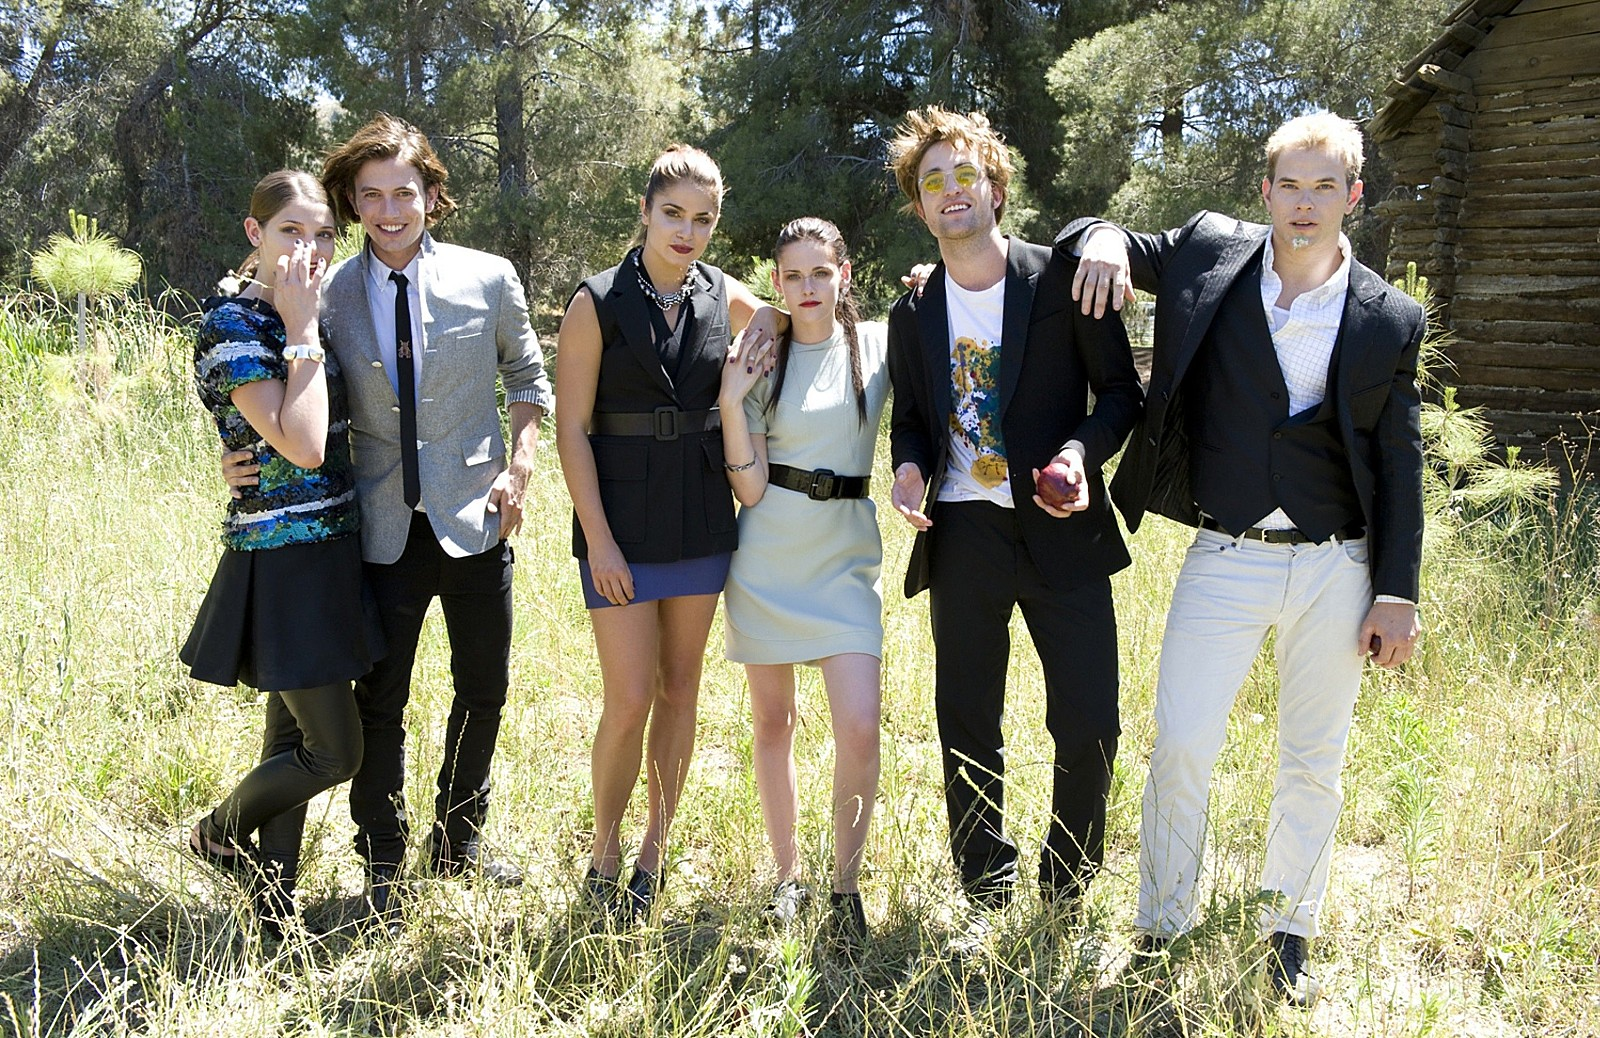 twilight actors still dating Learn about robert pattinson including past and current movies the cross-over appeal of 'twilight' actors by laura byrne-cristiano sep 01, 2011 comments.